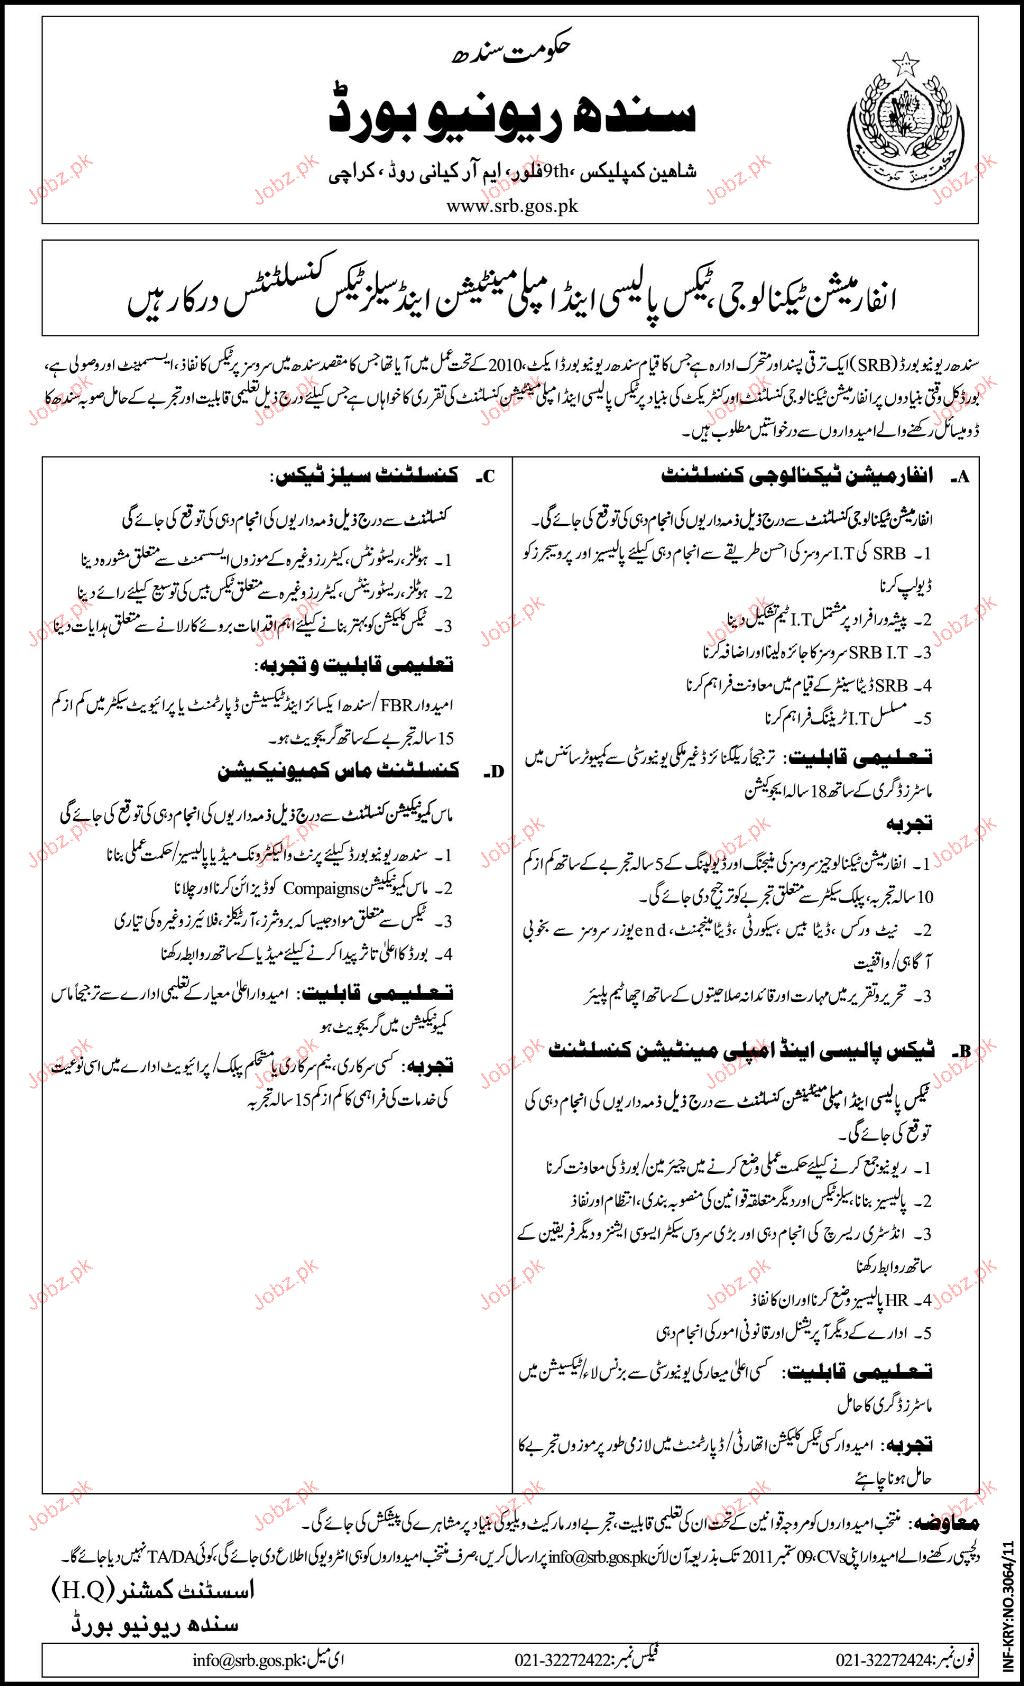 Information Technology Consultant Job Opportunity